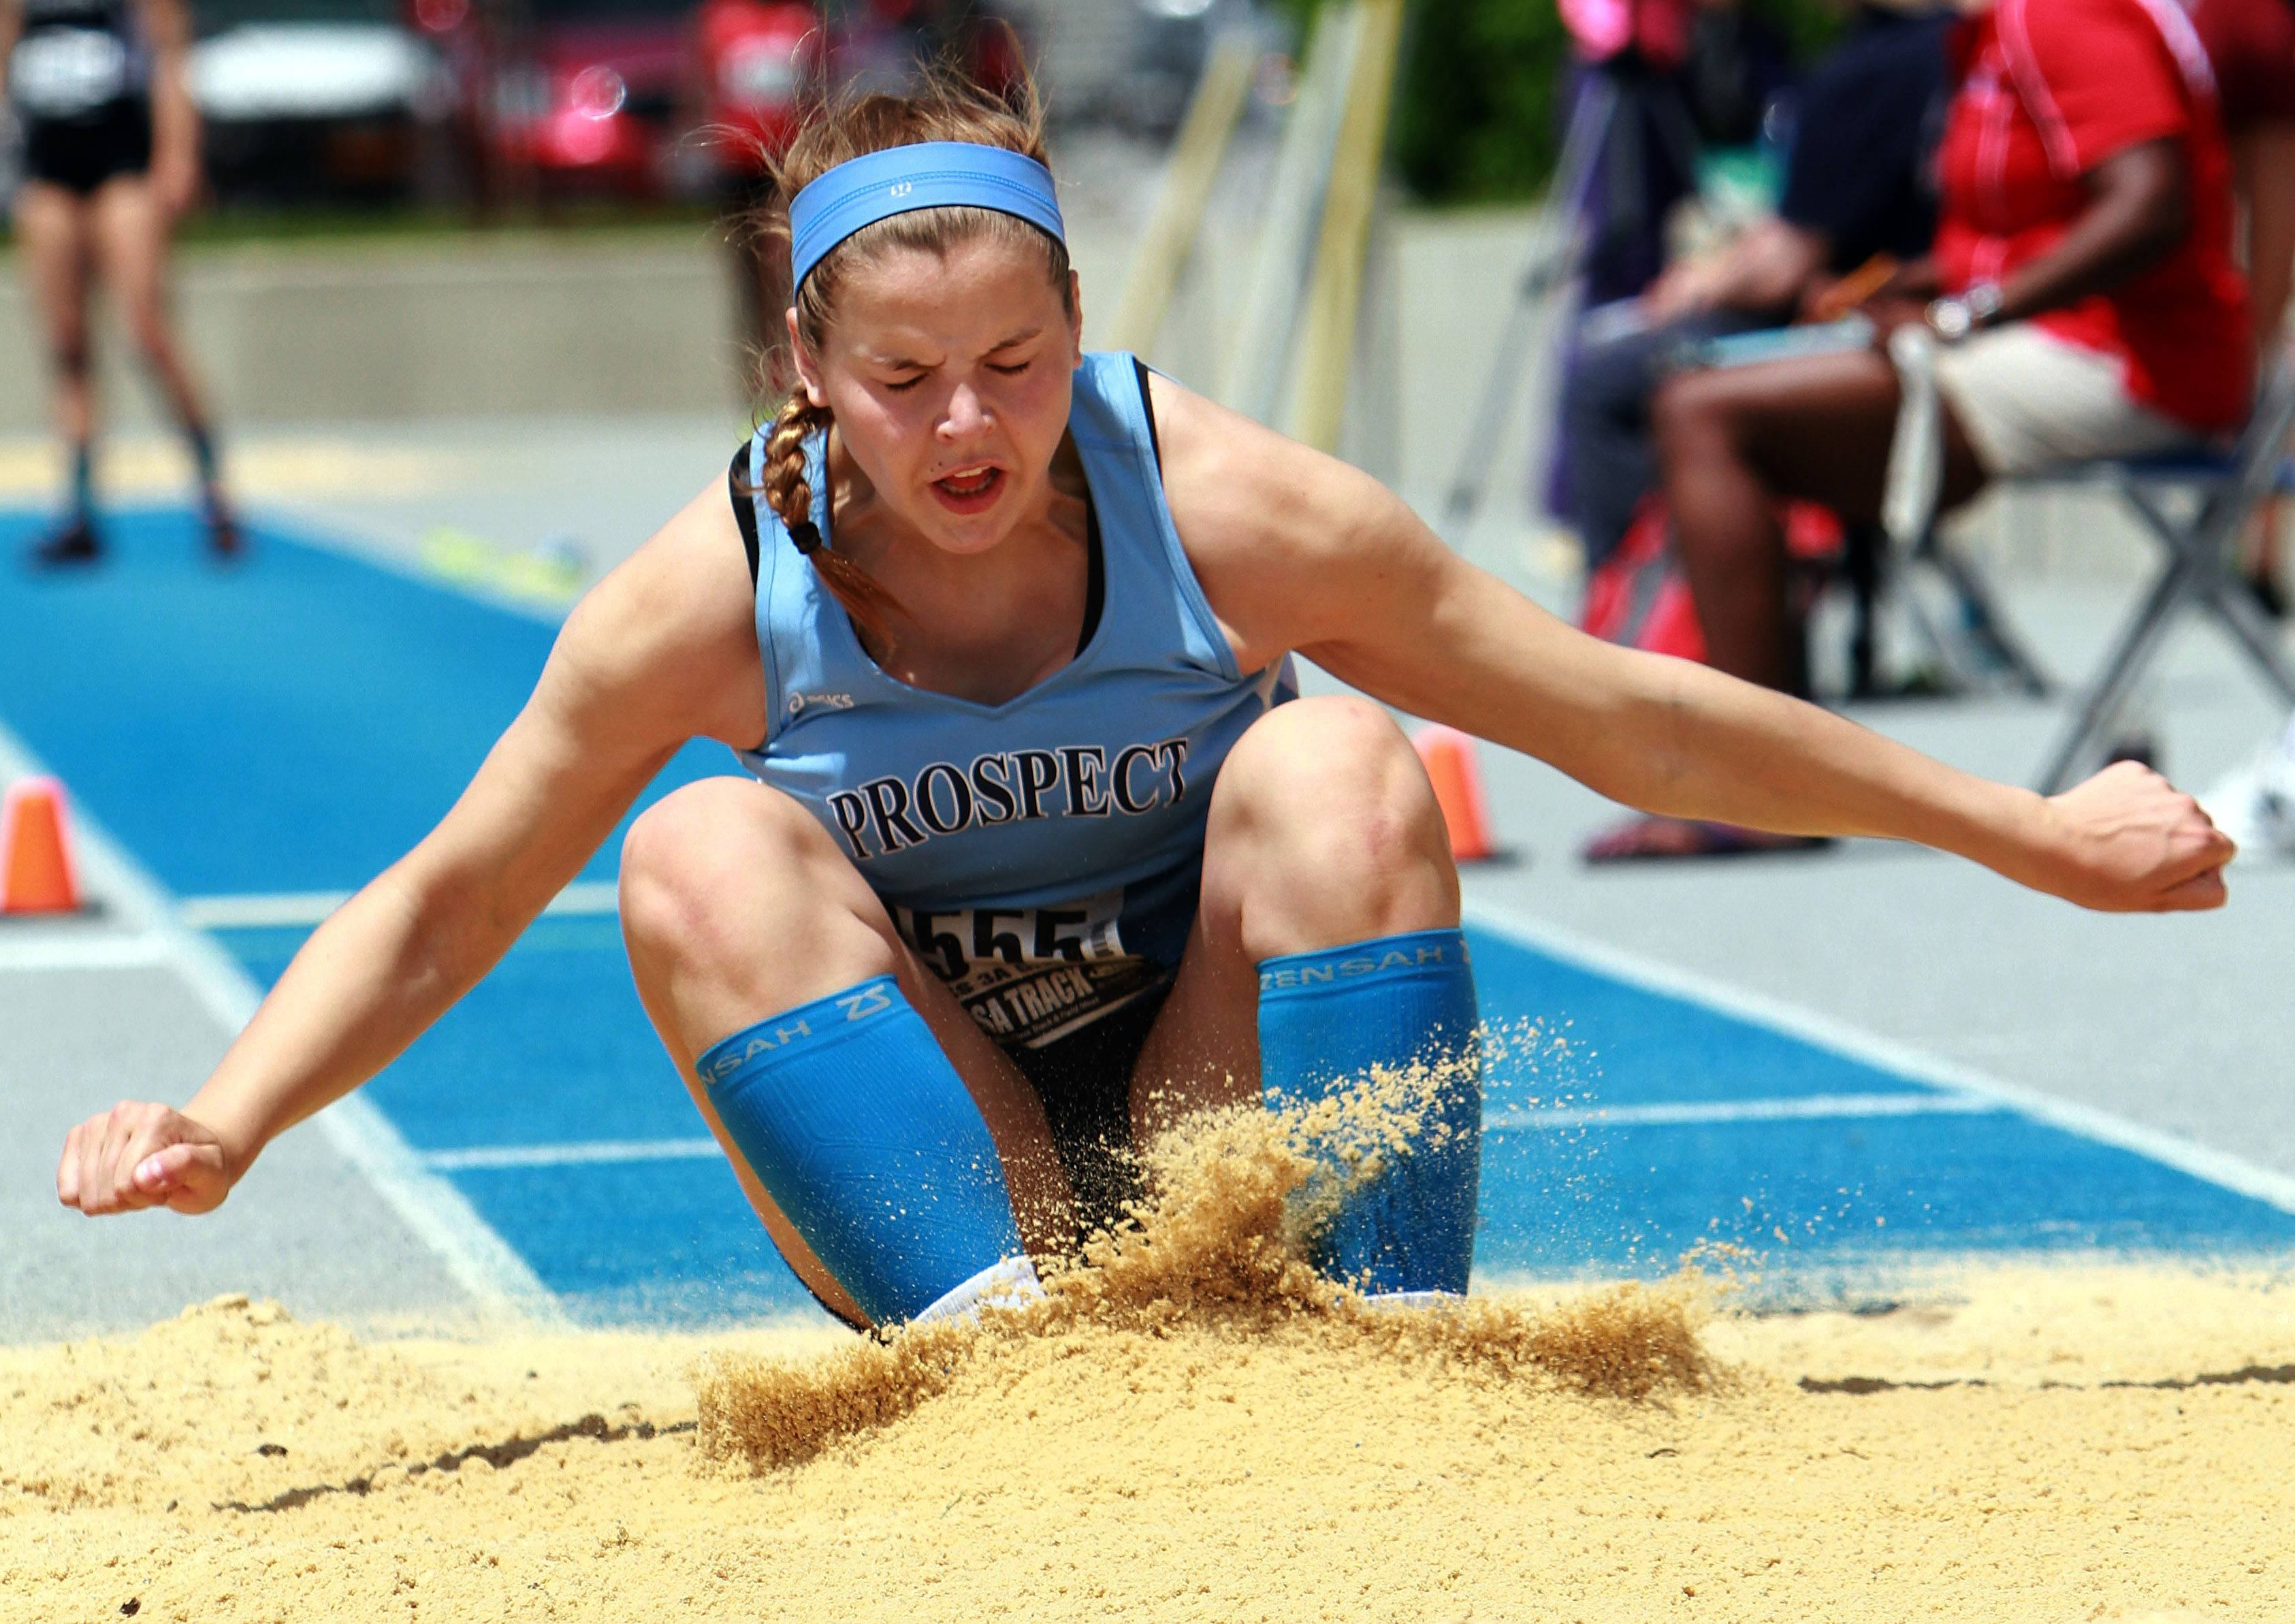 Prospect's Catherine Sherwood competes in the triple jump during the Class 3A prelims.